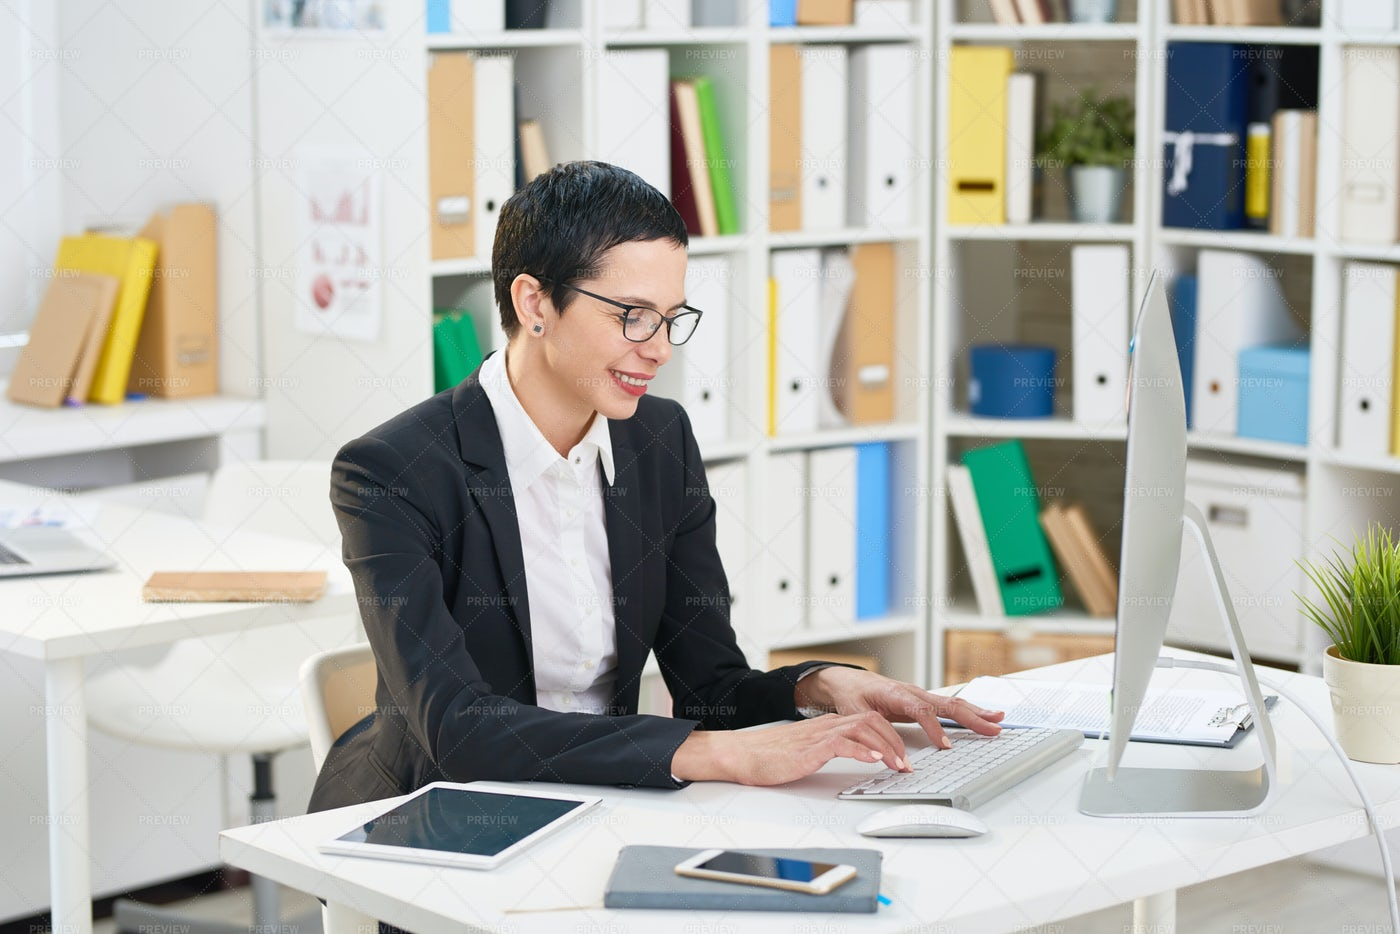 Pretty Manager Wrapped Up In Work: Stock Photos